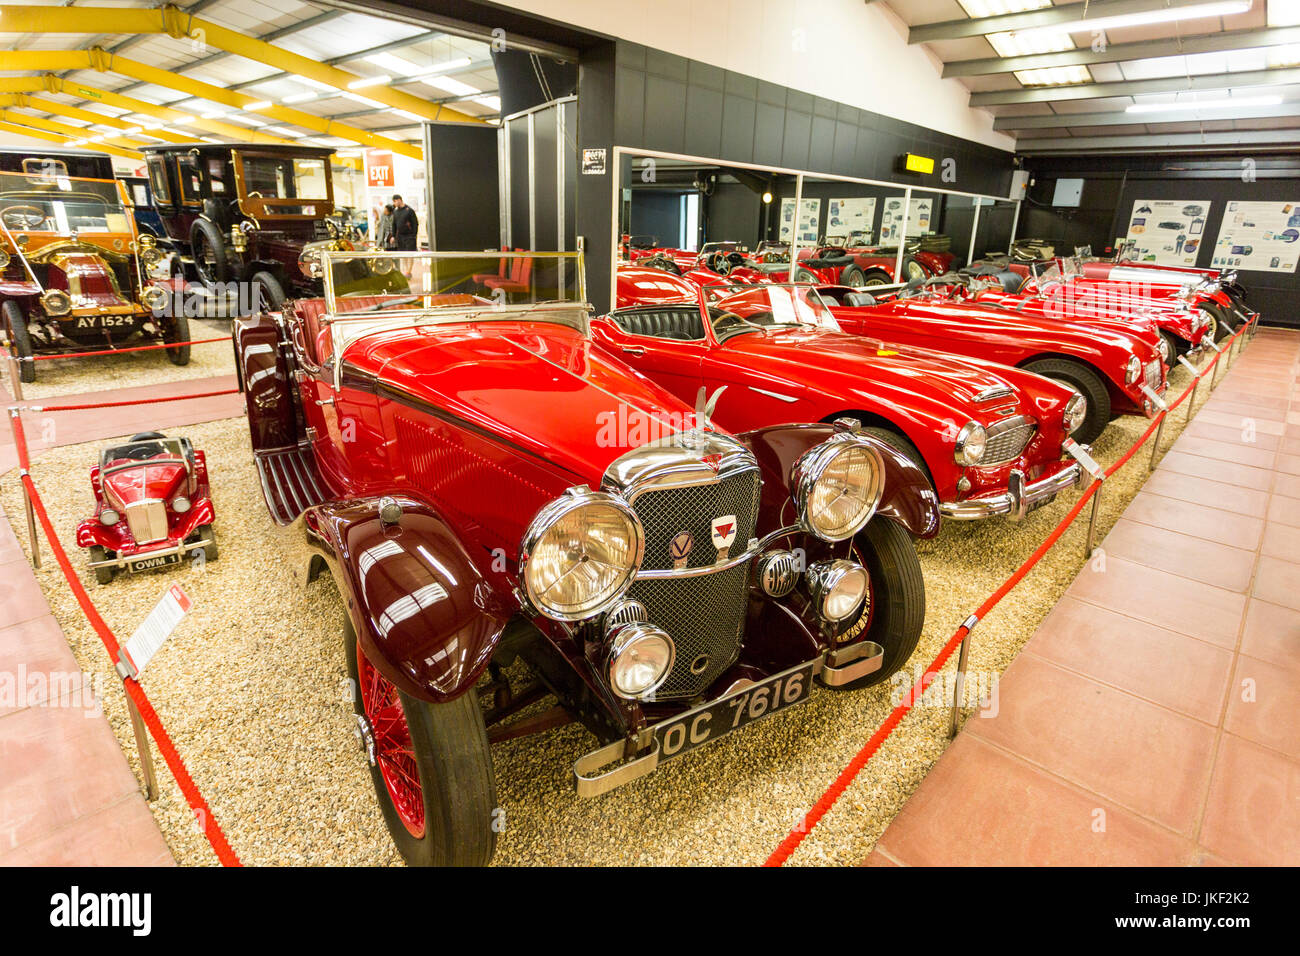 A selection of various sports cars in The Red Room at the Haynes International Motor Museum, Sparkford, Somerset, - Stock Image